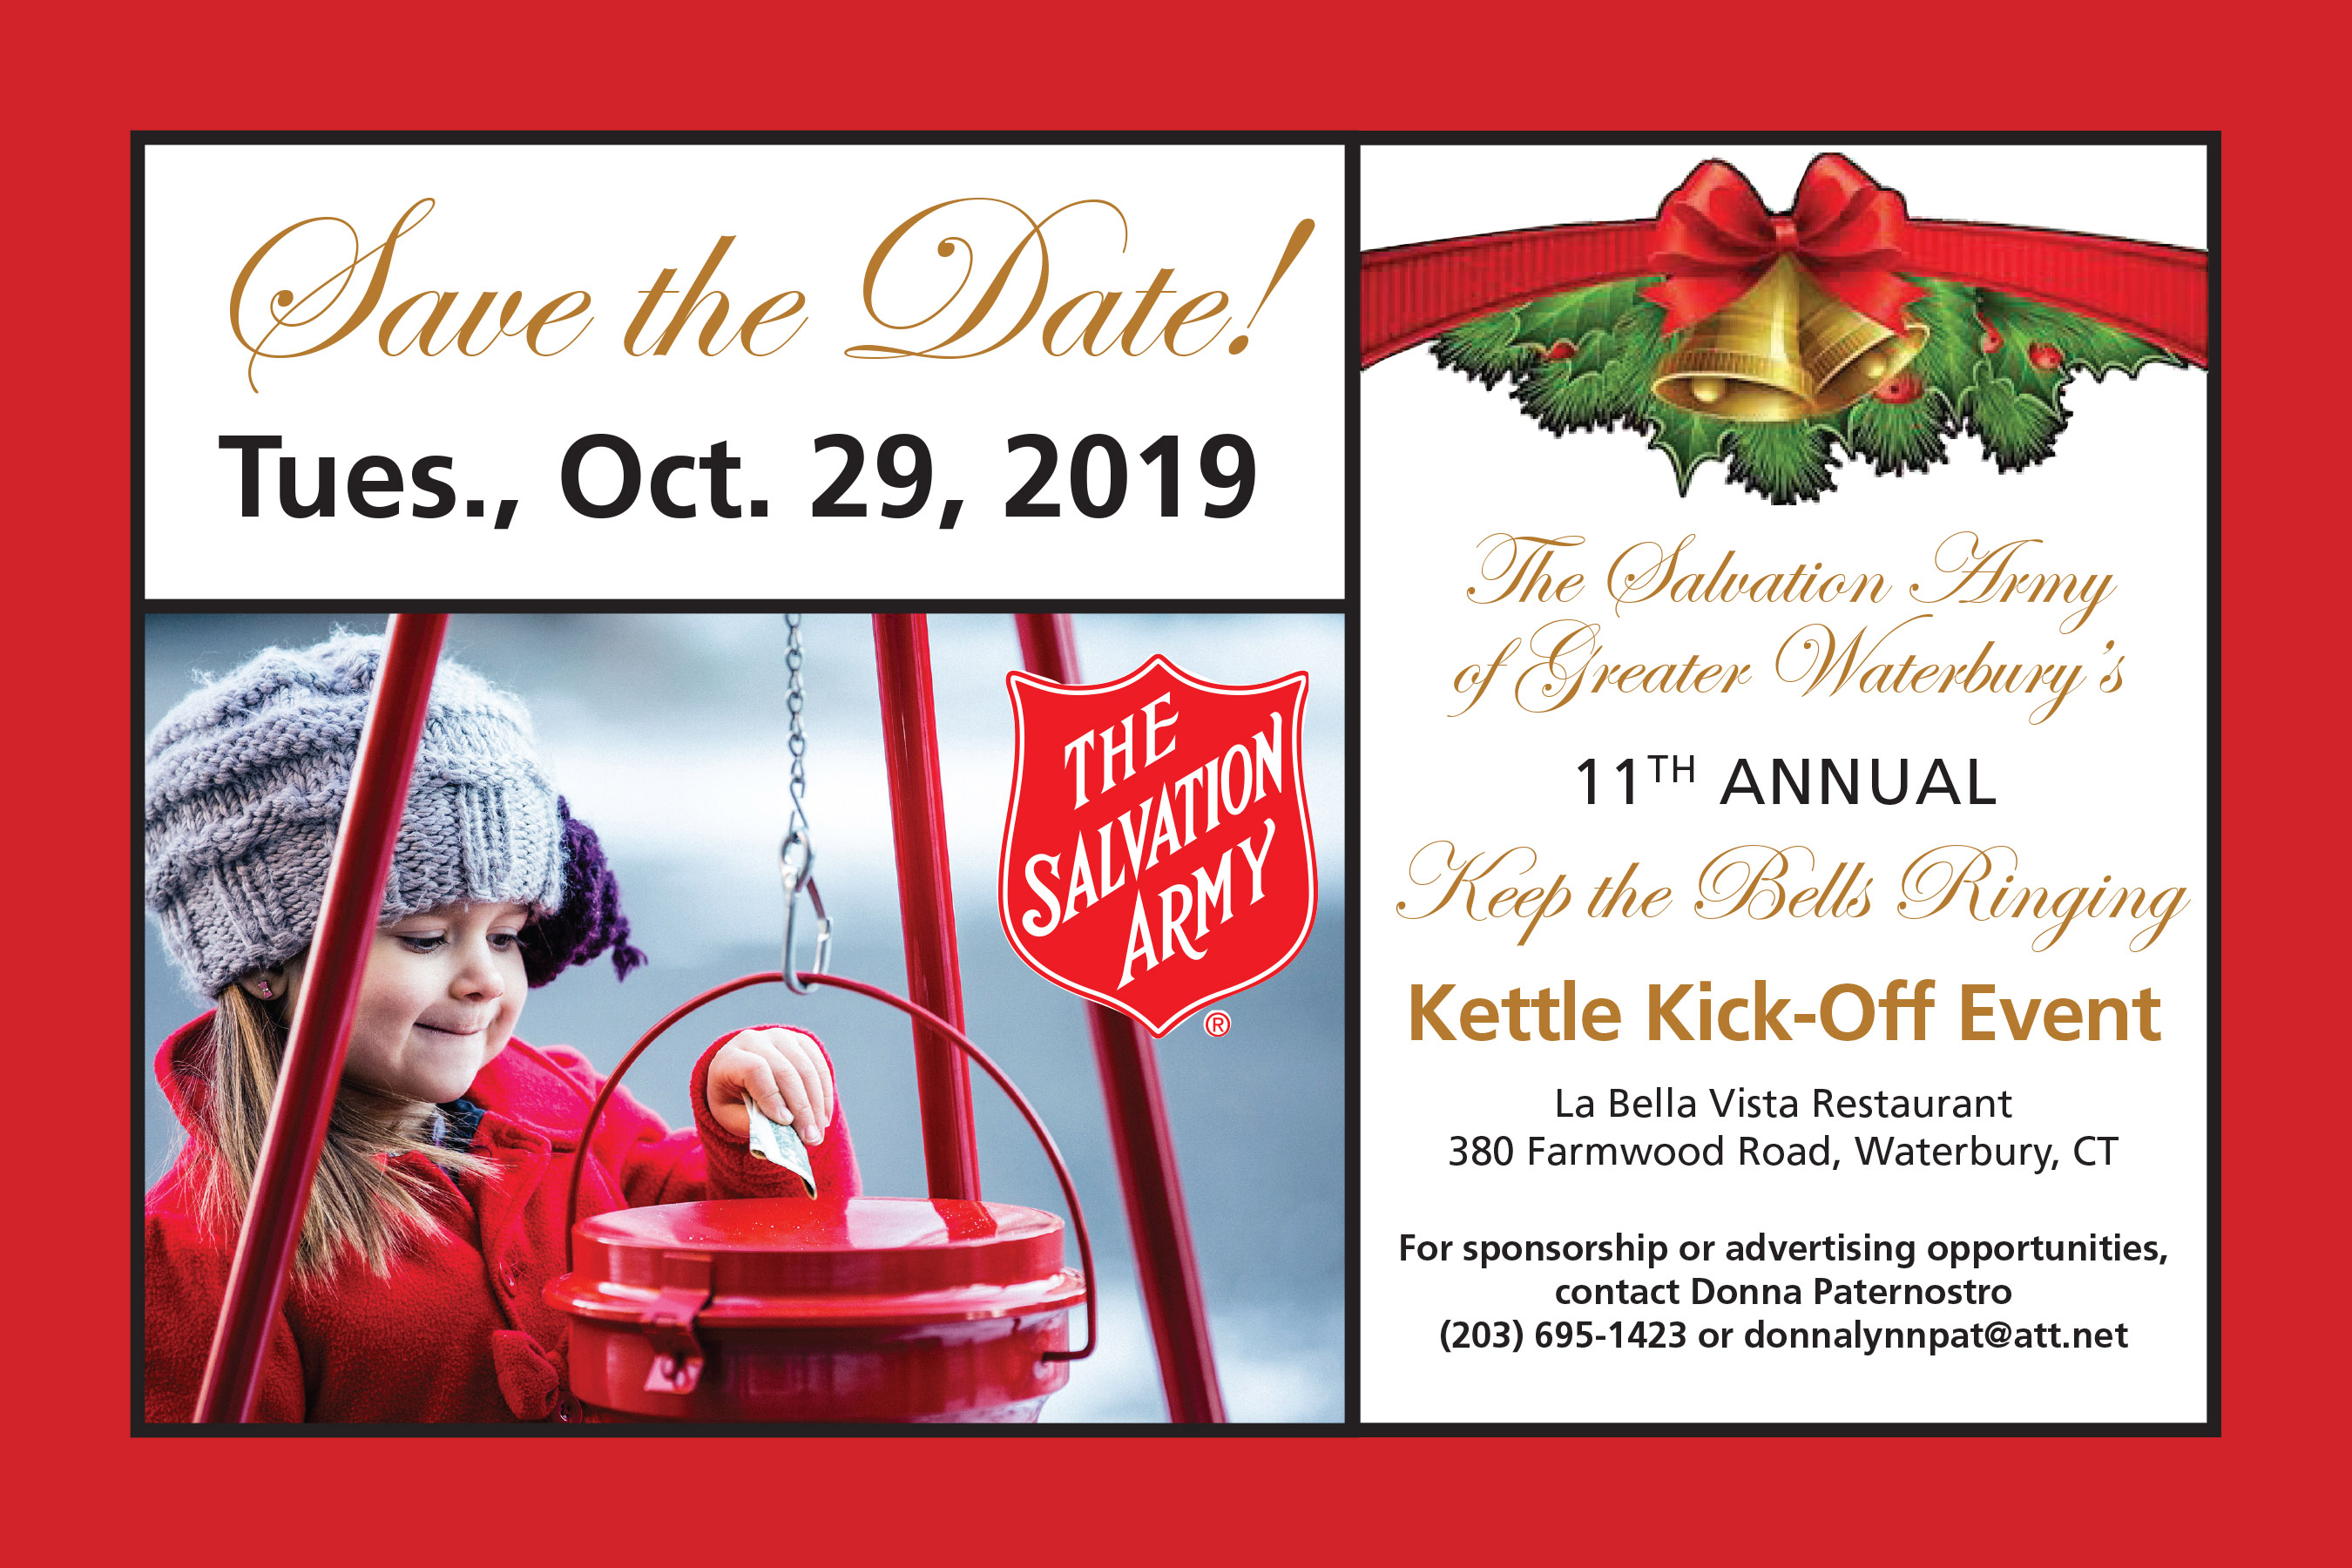 11th Annual Waterbury Salvation Army Kettle Kickoff